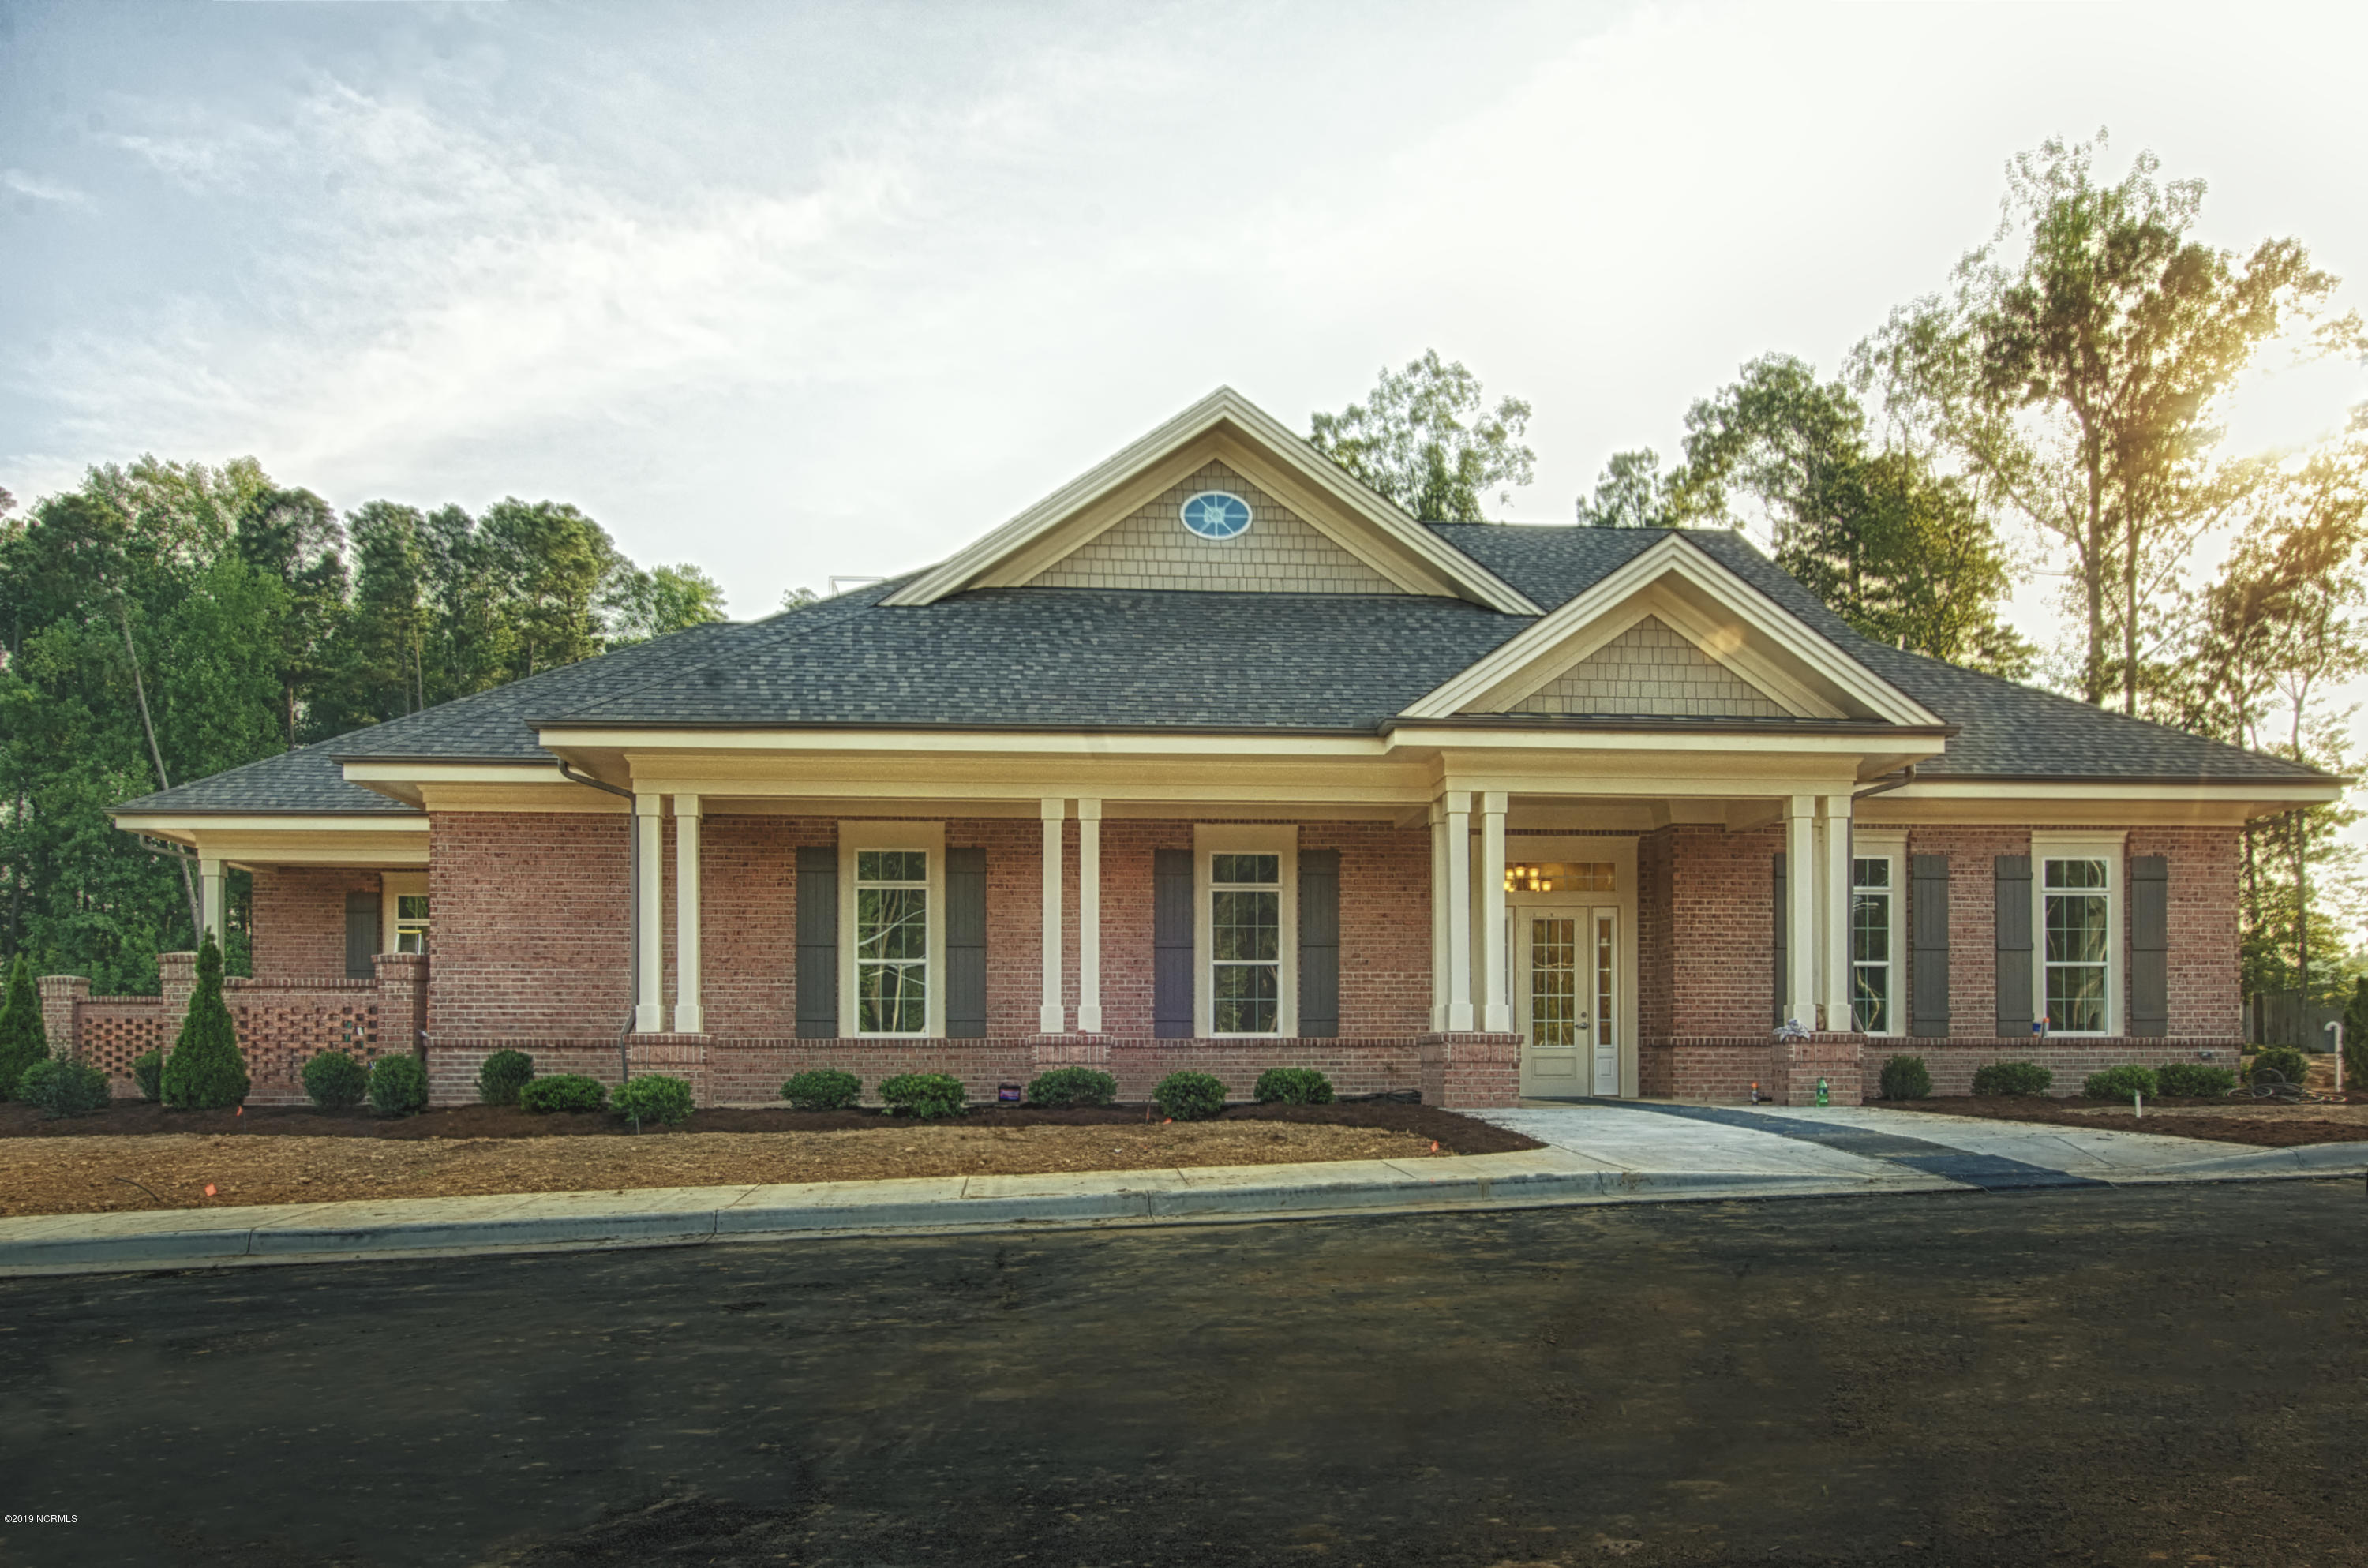 660 Chimney Hill Way, Rocky Mount, North Carolina 27804, ,Residential land,For sale,Chimney Hill,100193302